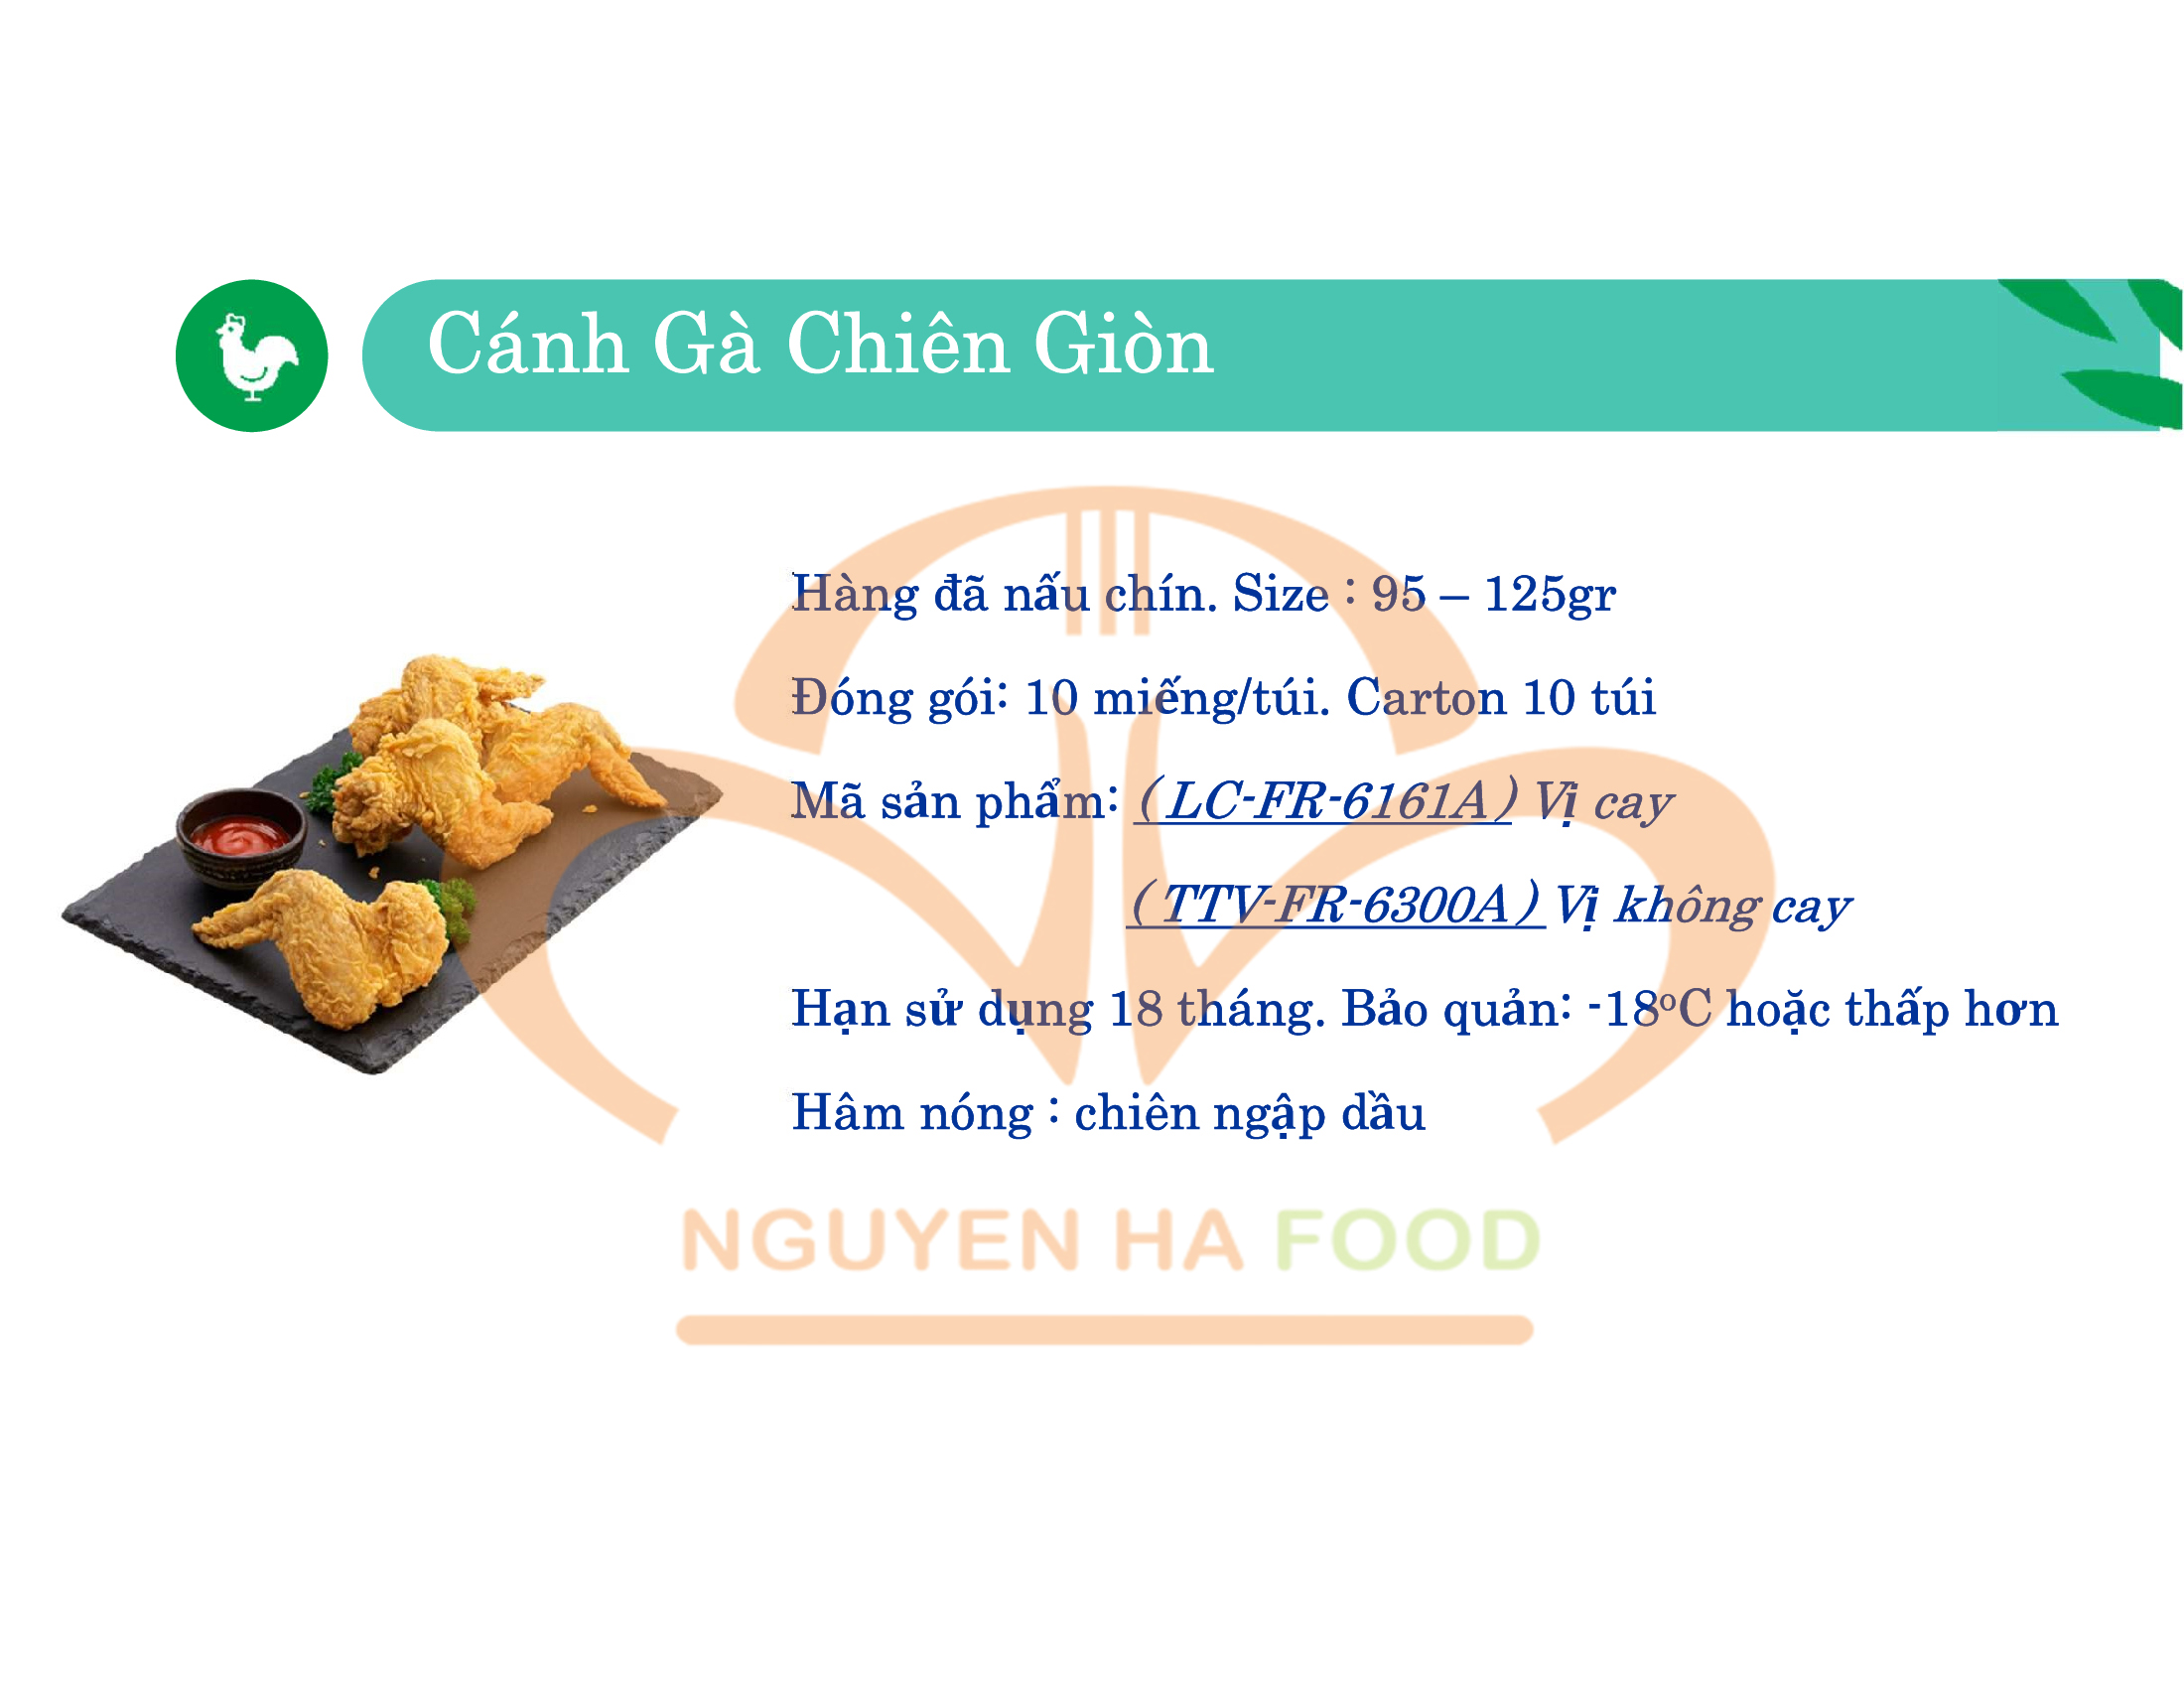 05 CANH GA CHIEN GION CP NGUYEN HA FOOD